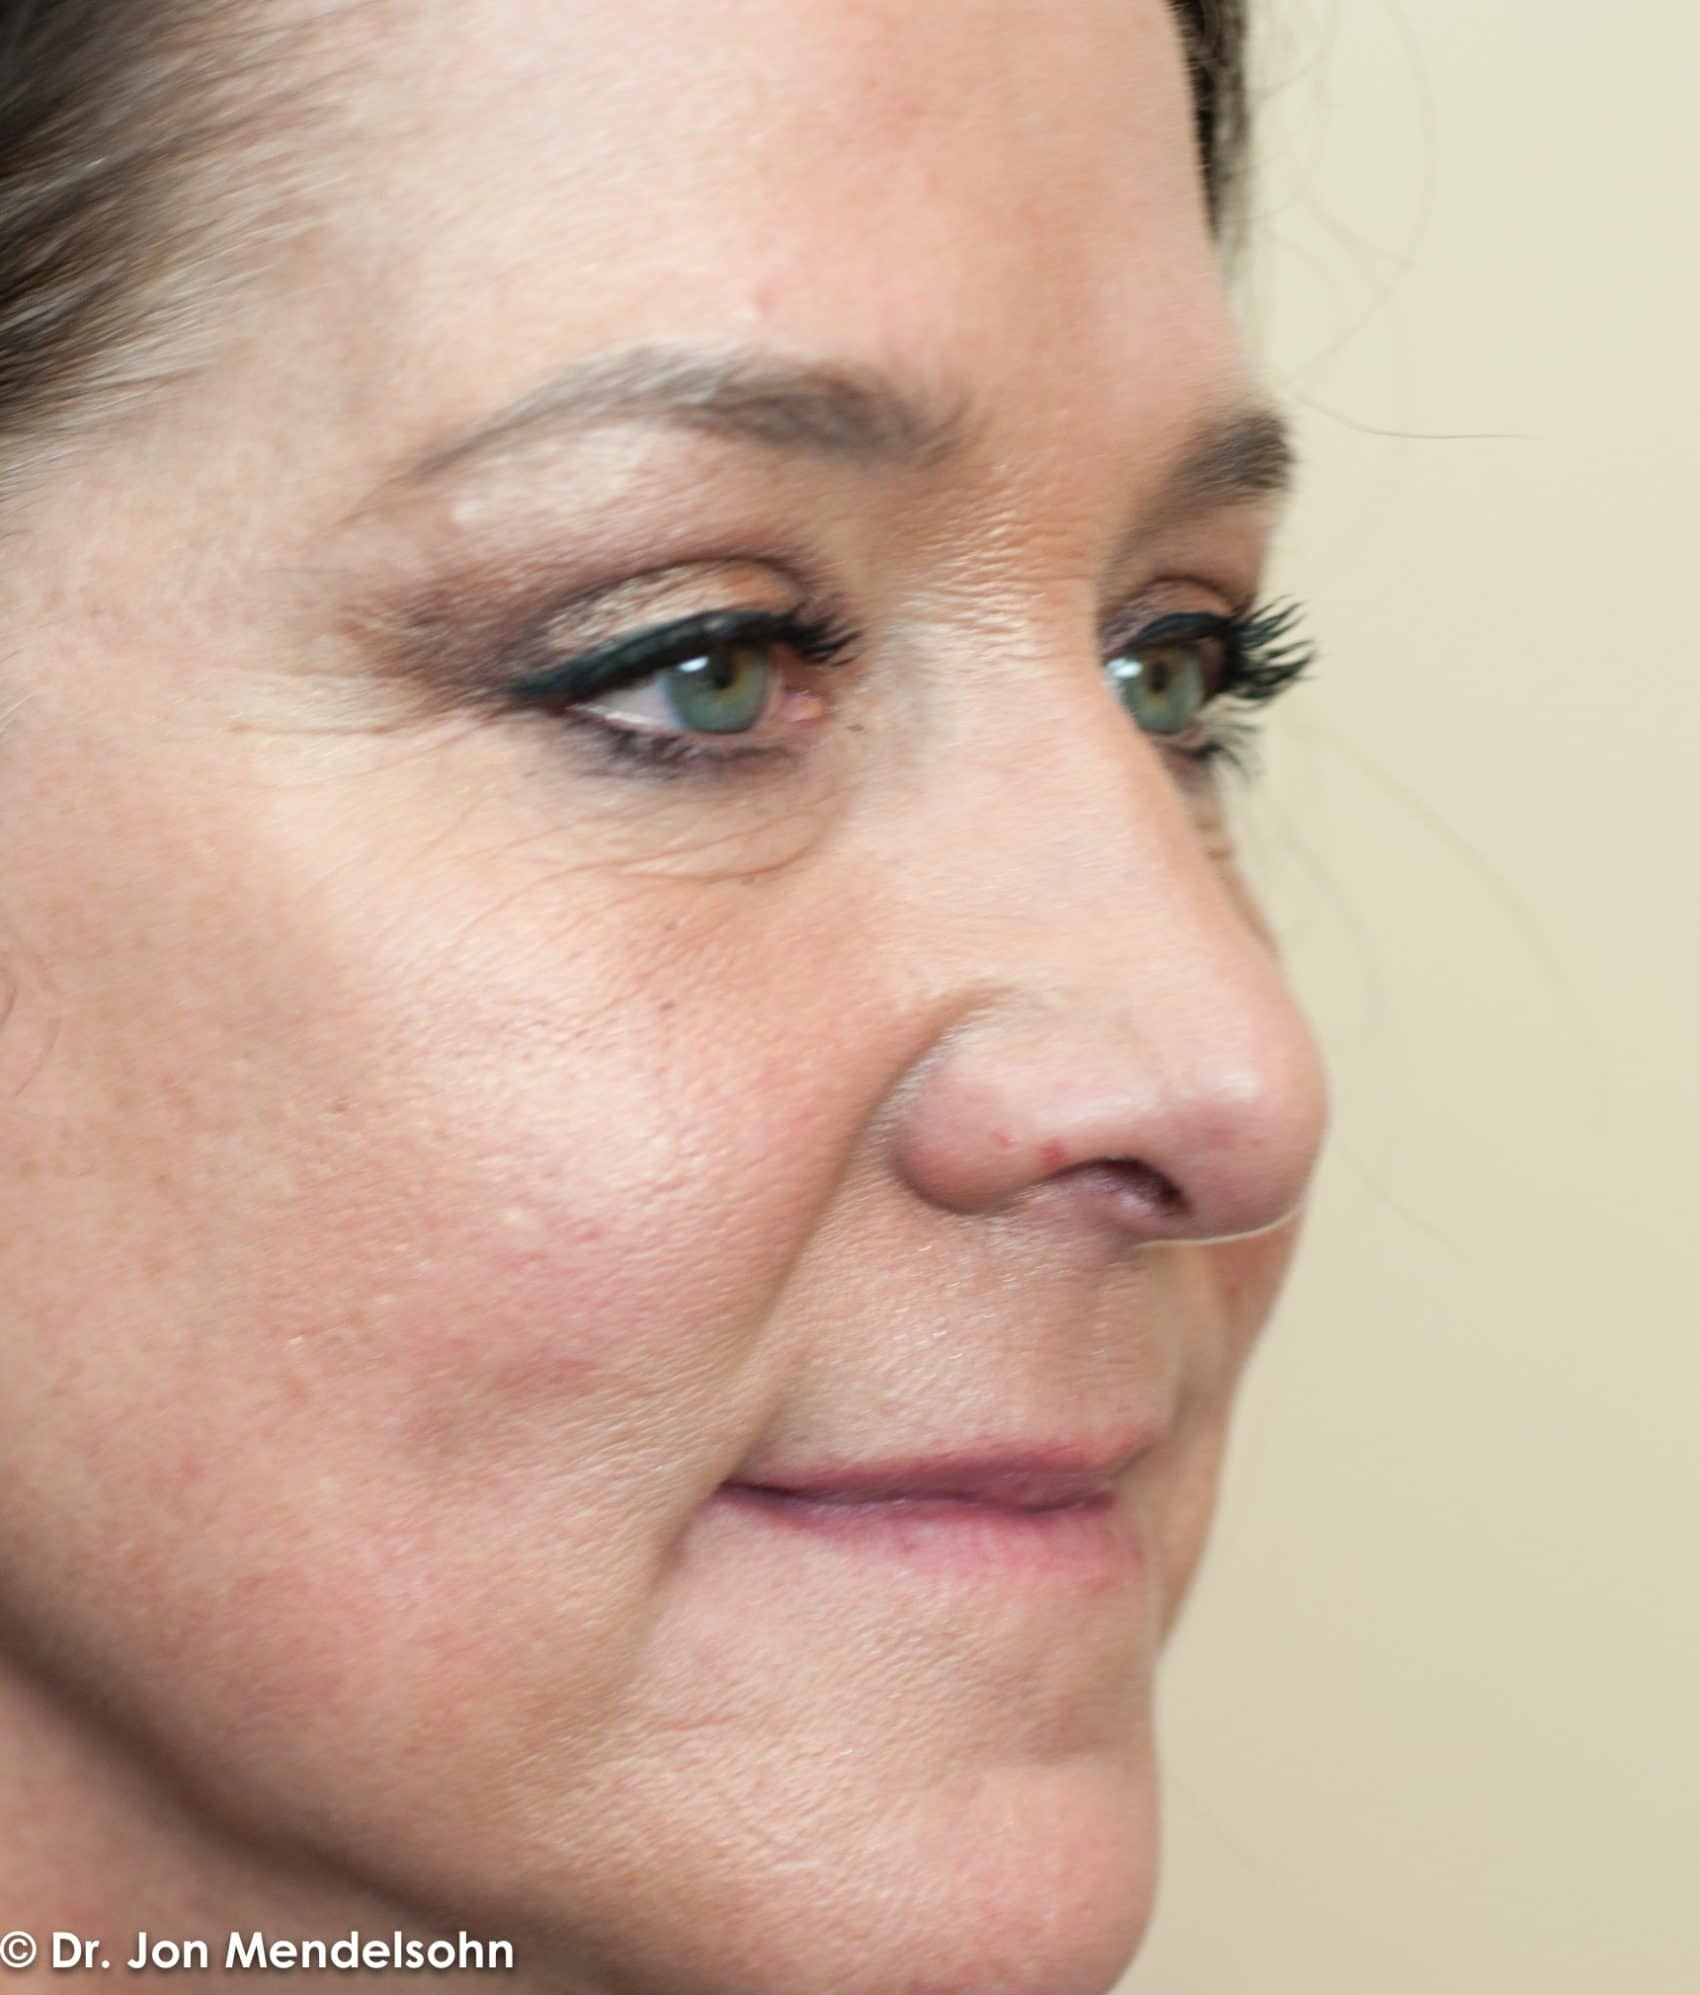 Upper-blepharoplasty-eyelid-surgery-cincinnati-dr-jon-mendelsohn-best-eyelid-surgery-plastic-surgery-realself-truseselfies-three-quarter-right-after-Cross-Angie-7488-2